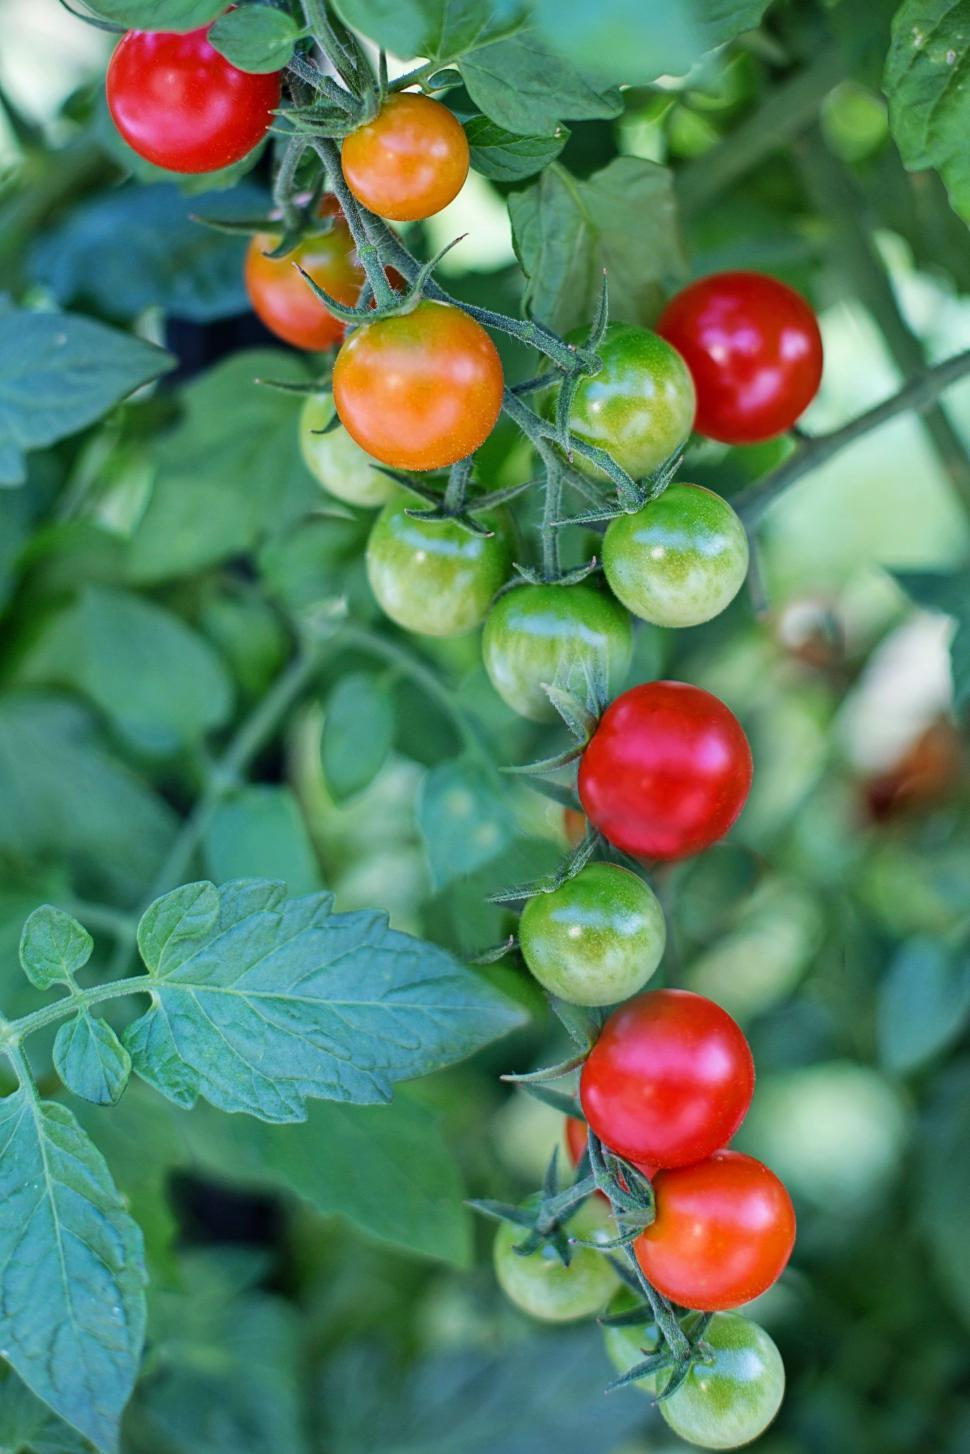 Download Free Stock Photo of Cherry Tomatoes with green leaves